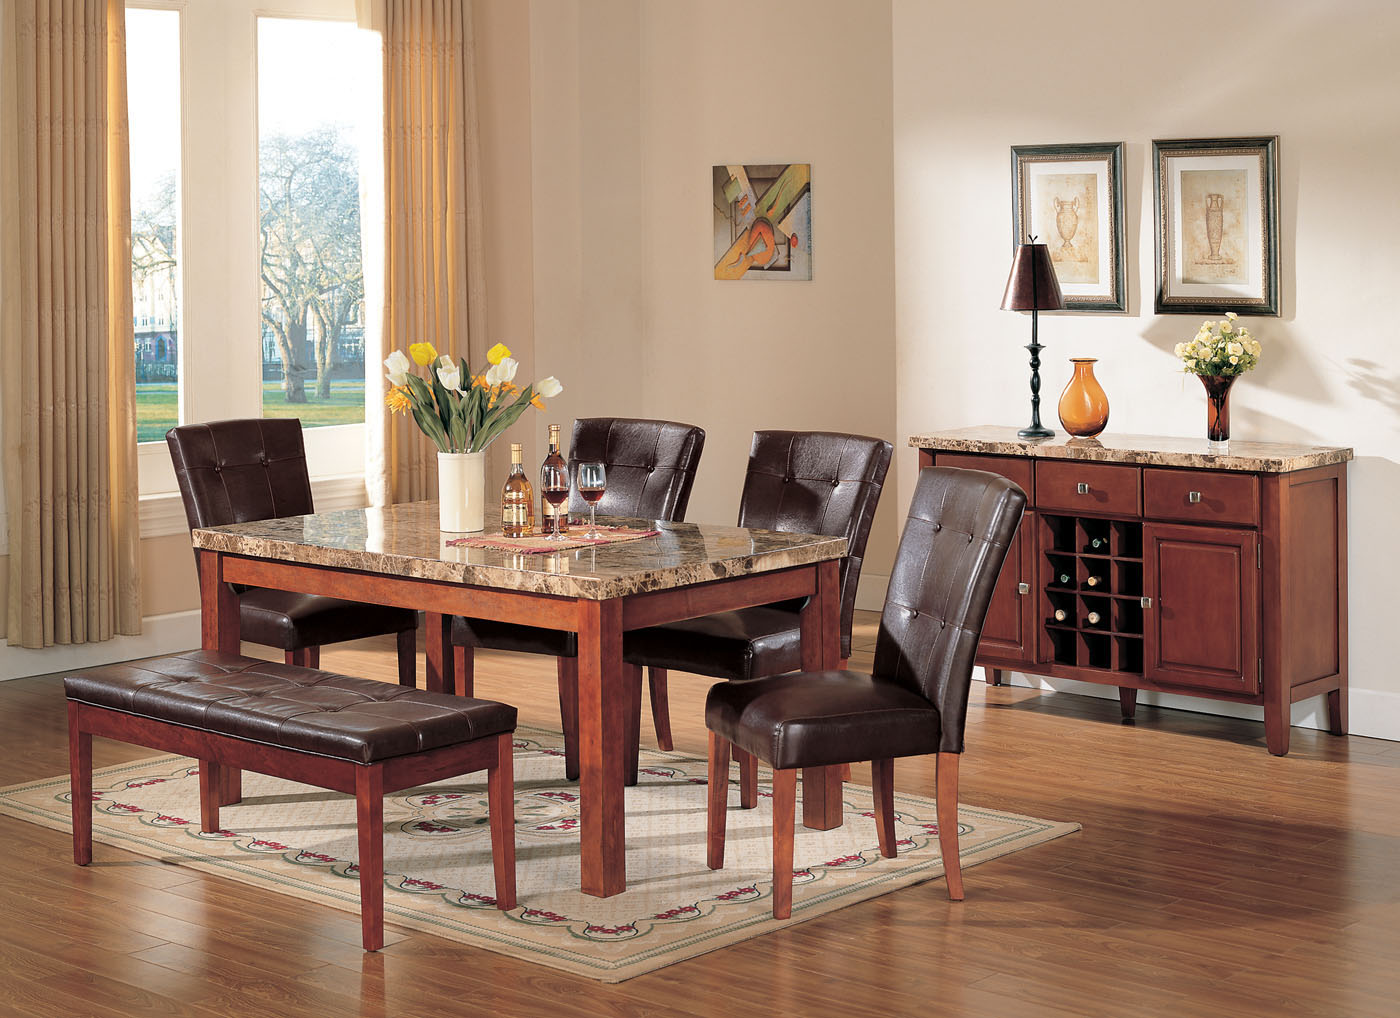 Acme Bologna 6 Pc Marble Top Rectangular Dining Table Set